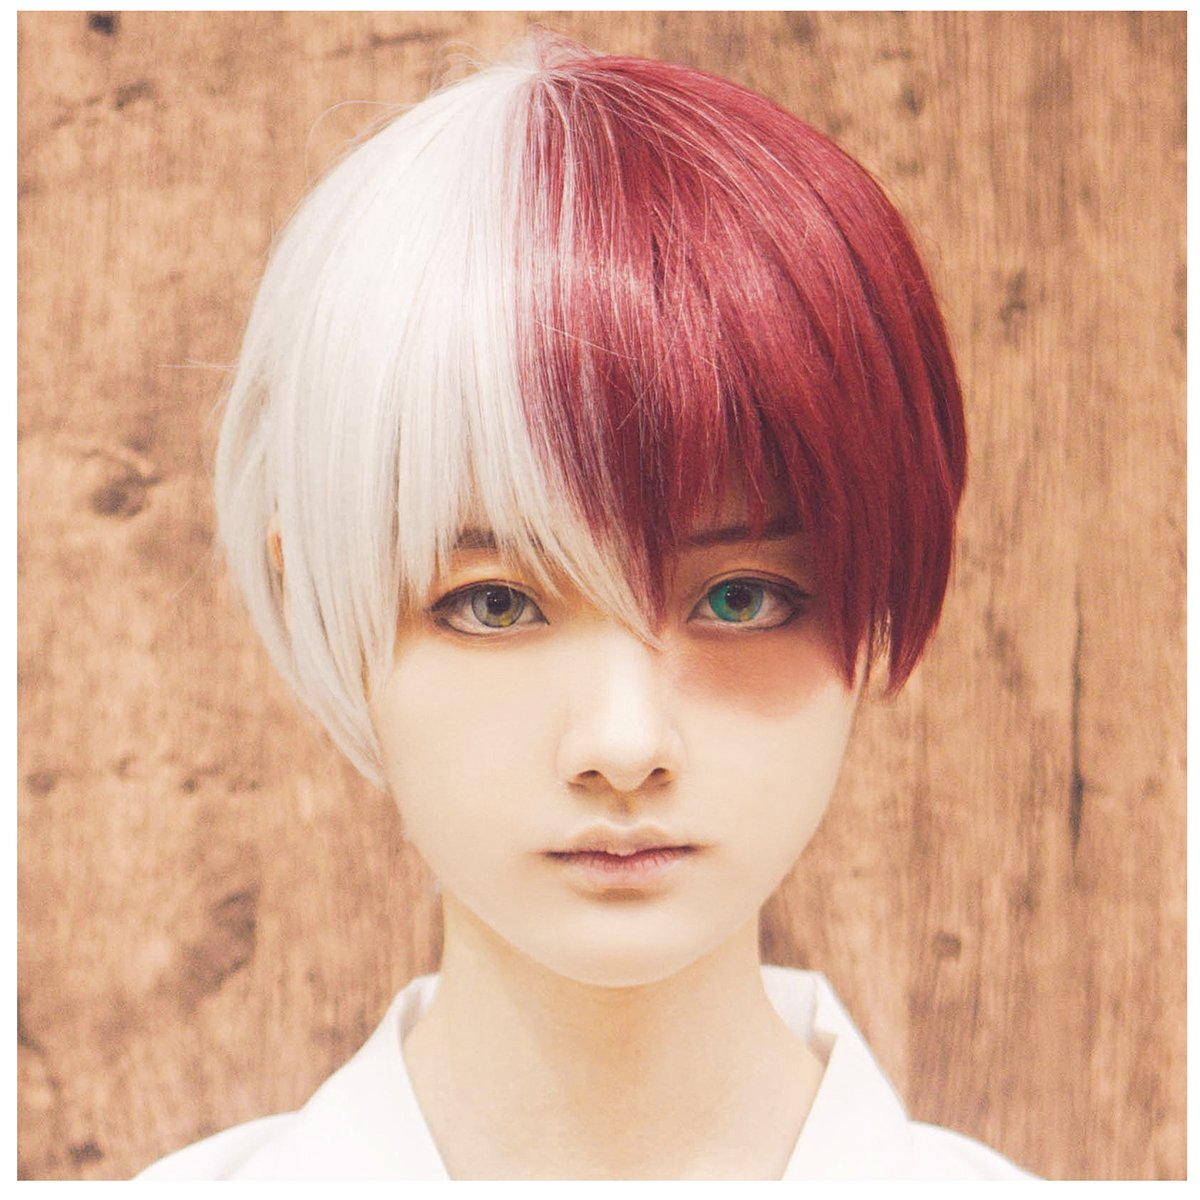 ColorGround Half Silver White Half Red Cosplay Wig for Halloween by ColorGround